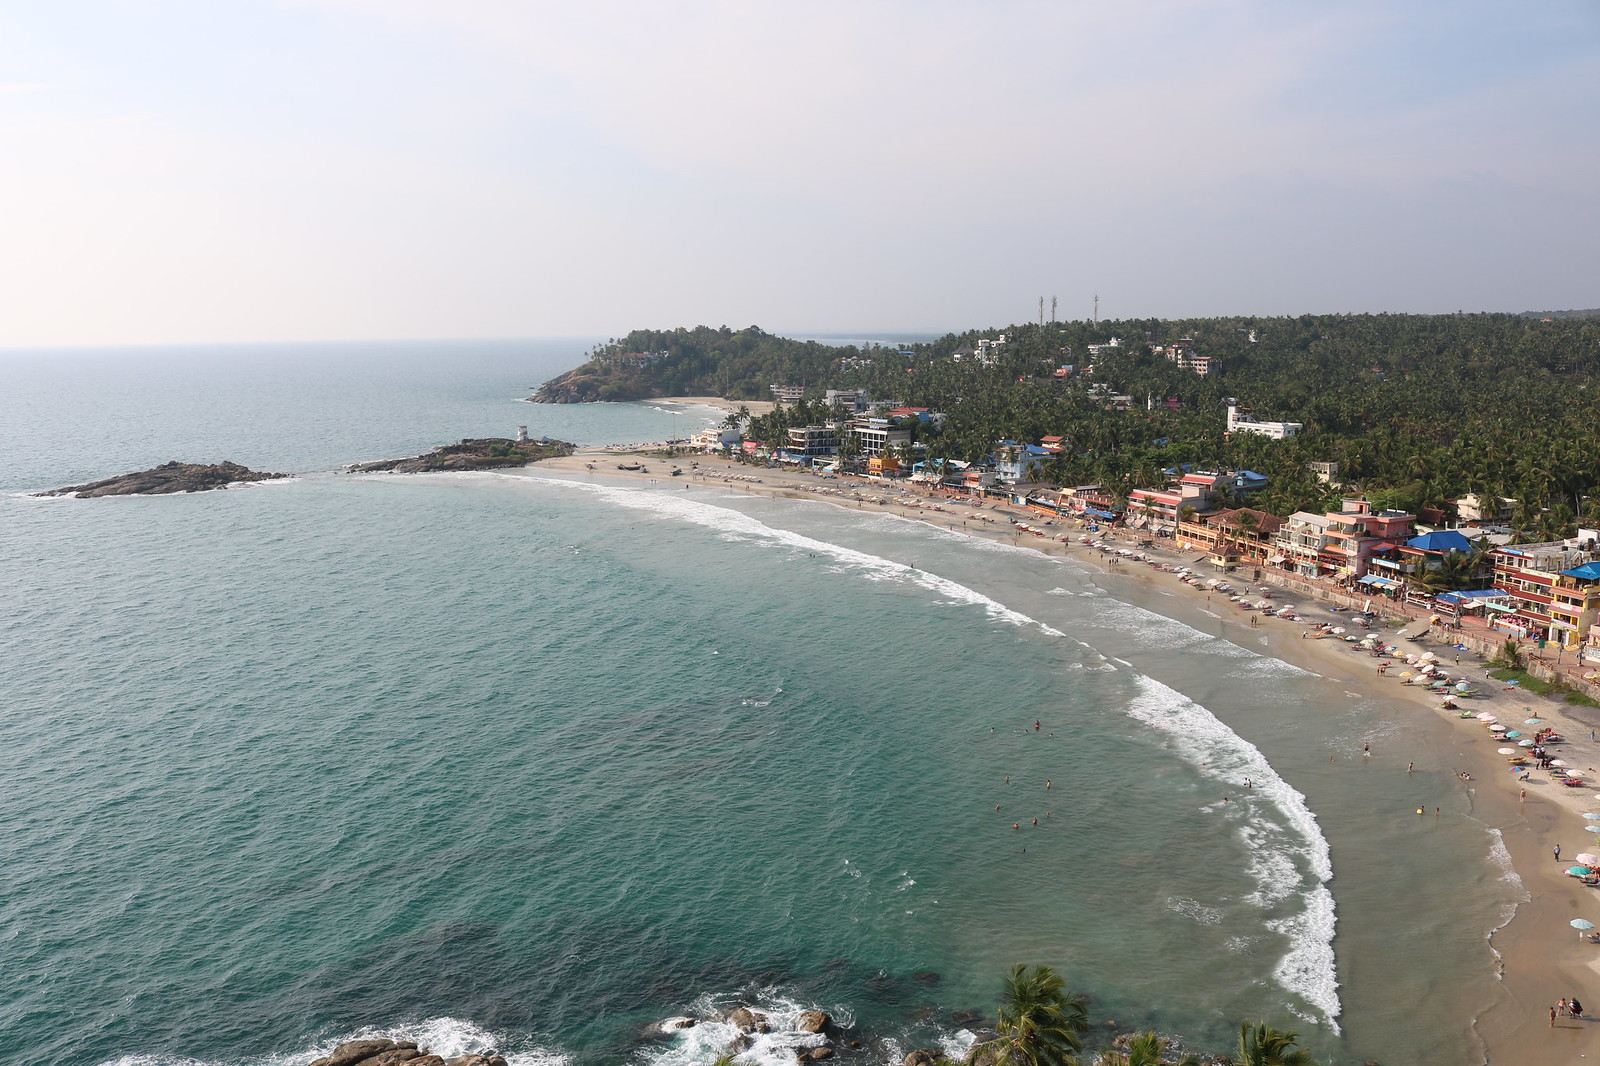 View from Kovalam Lighthouse - RightSide - Lighthouse and Hawa Beach